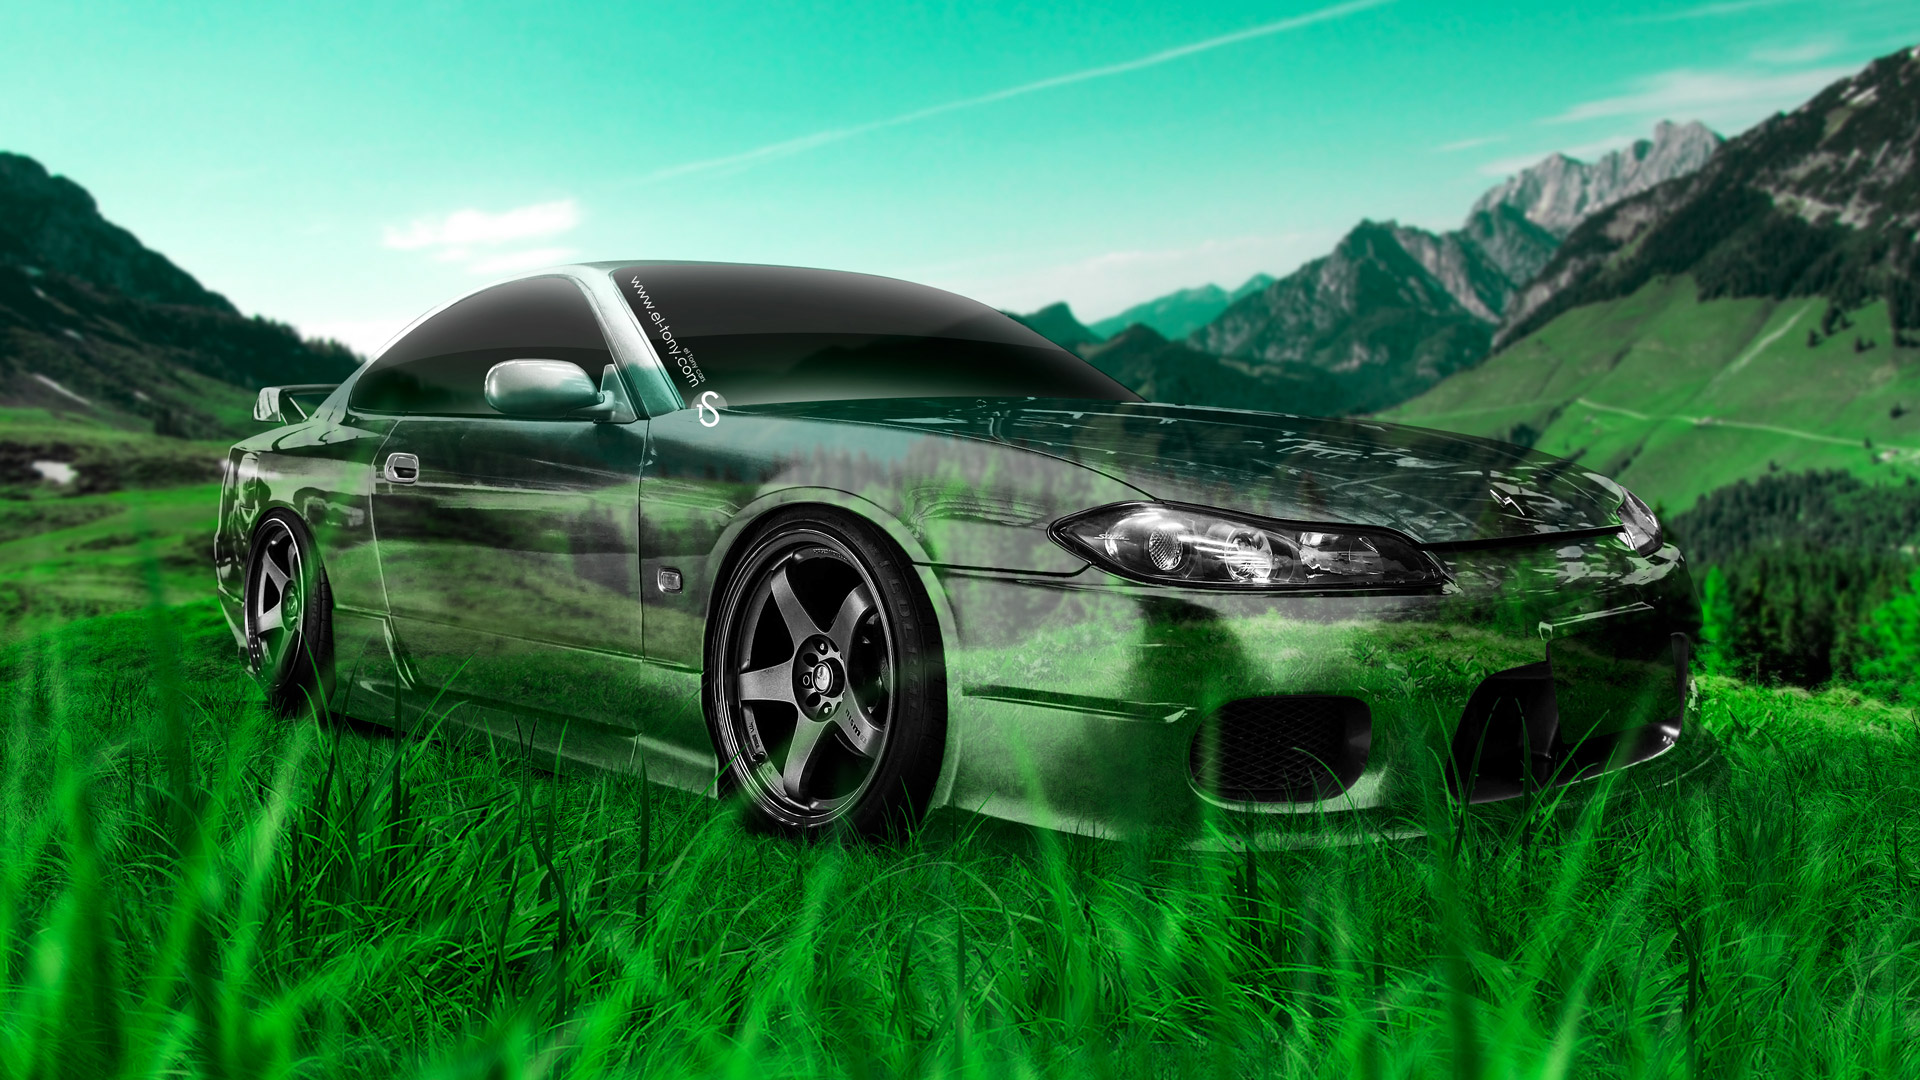 «Nissan Silvia S15 JDM Crystal Nature Car 2014 Photoshop .